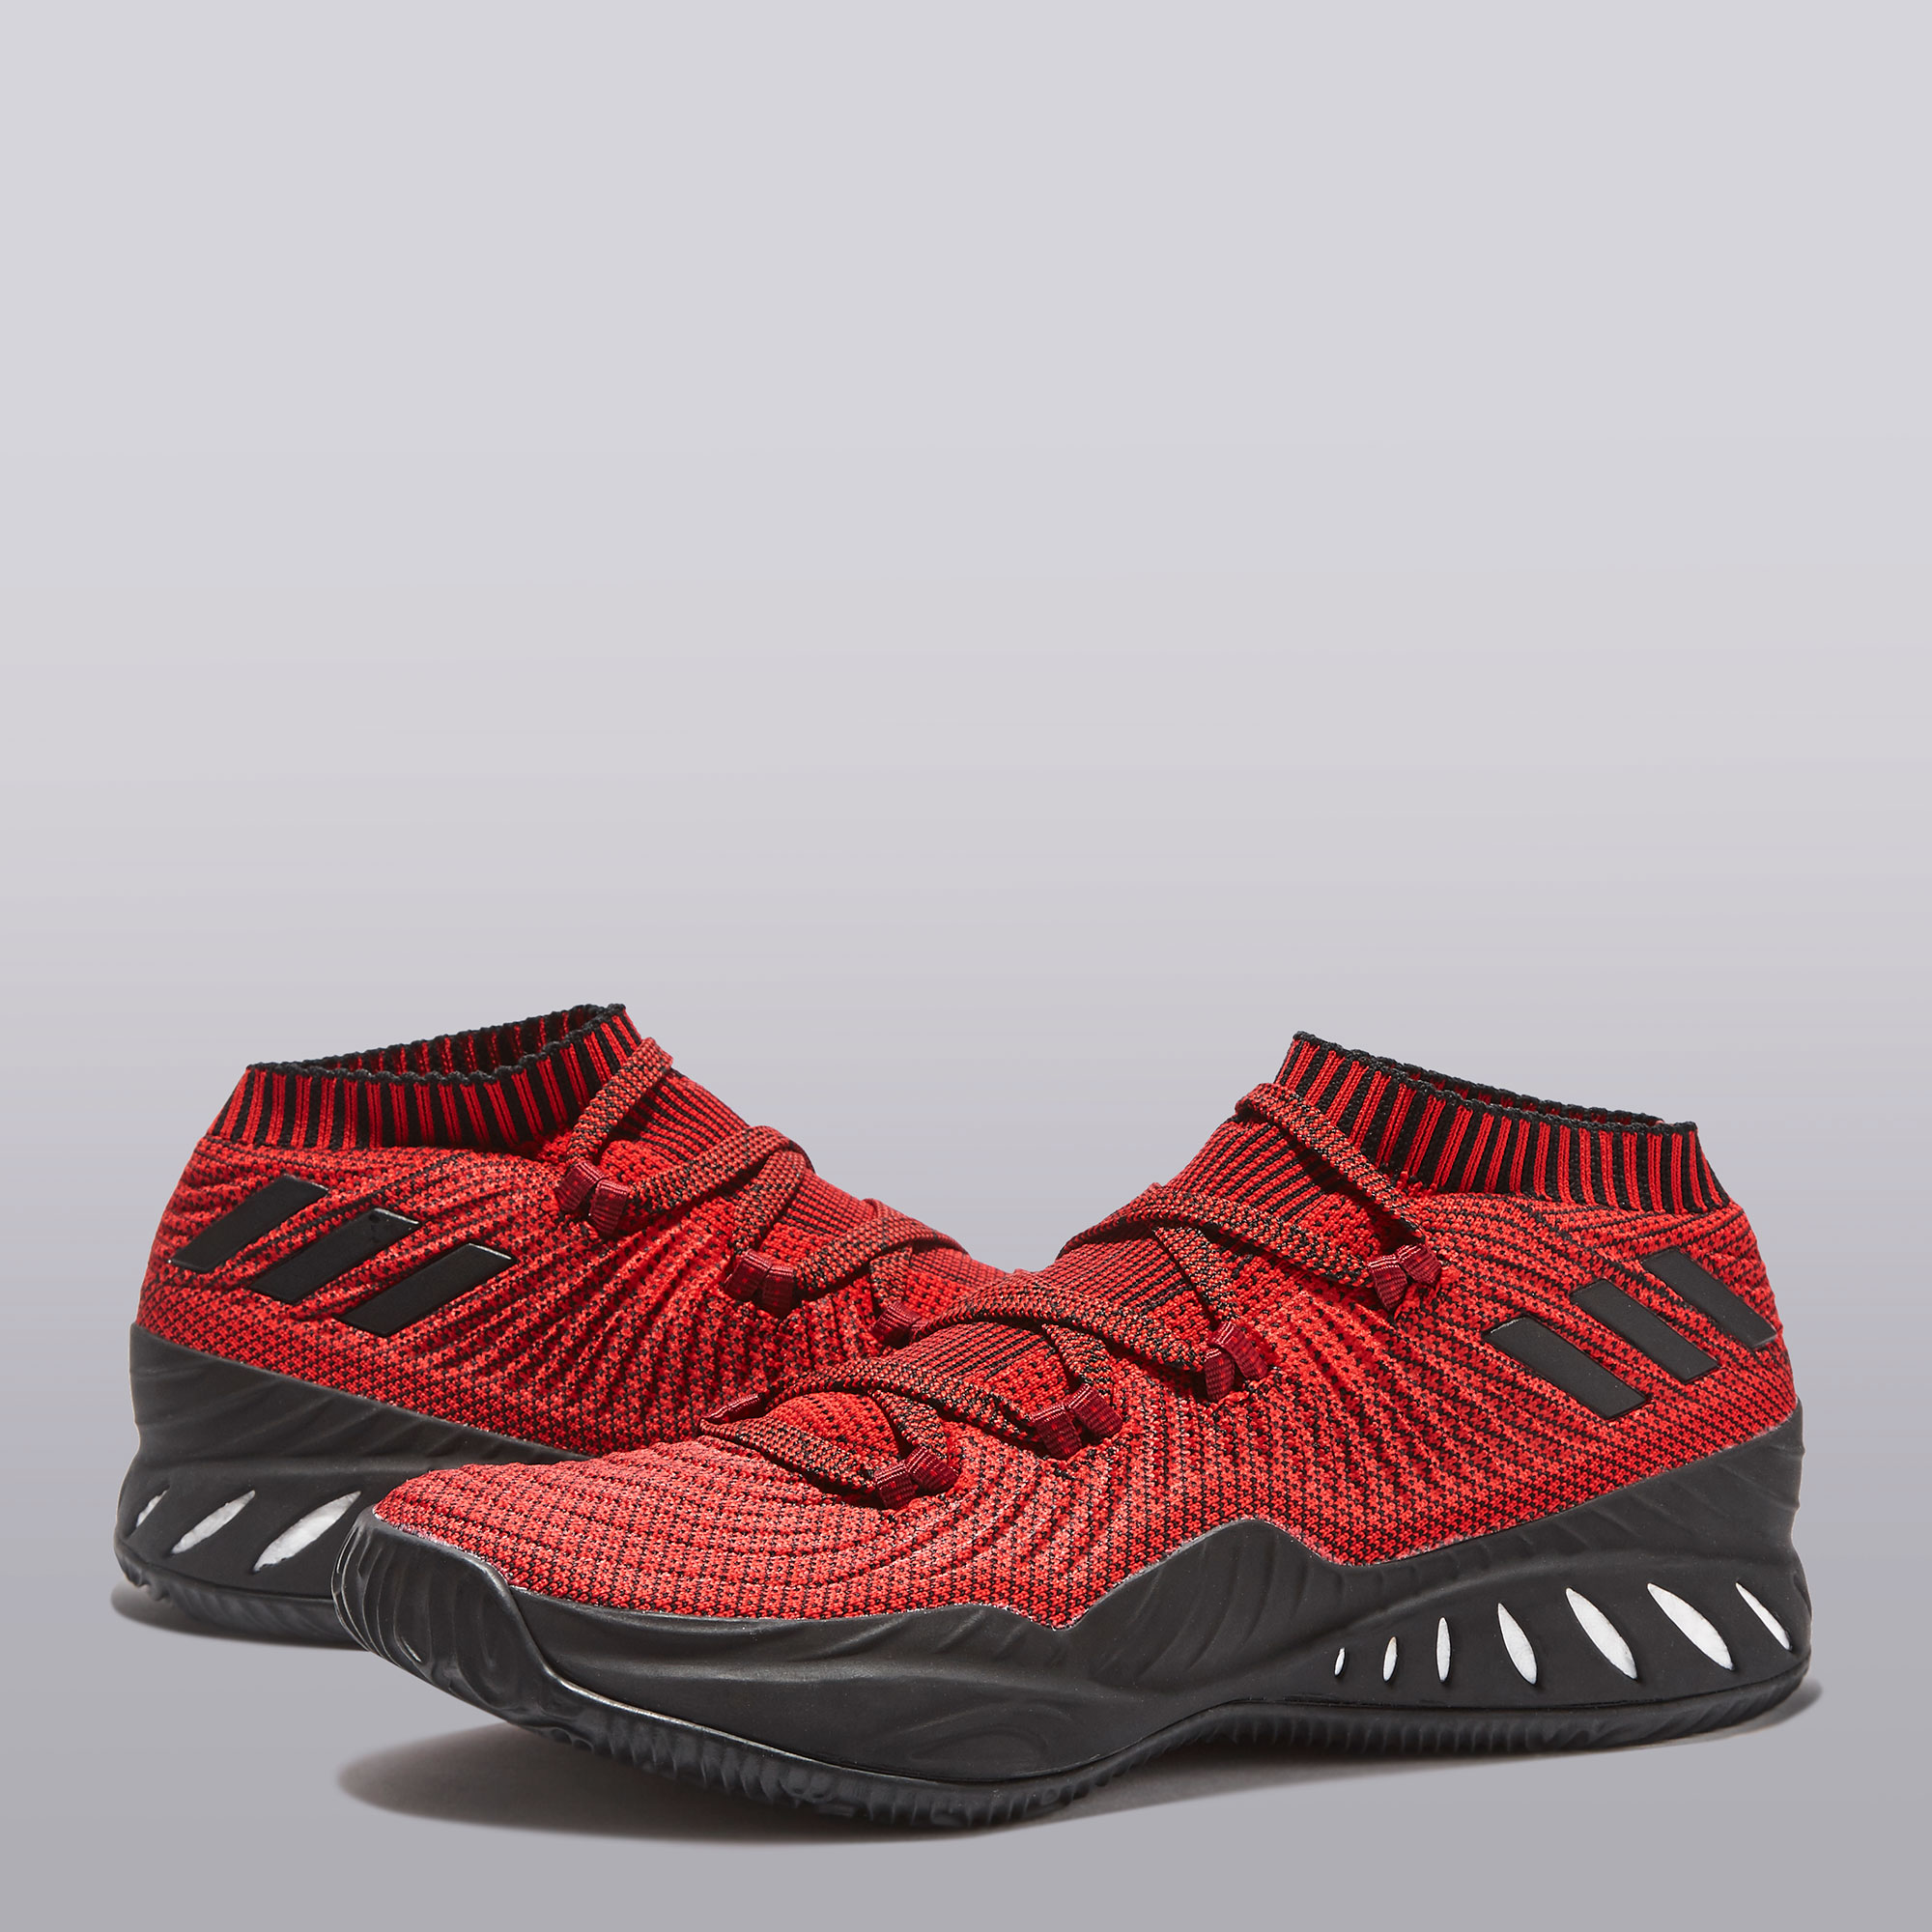 "Image of ""adidas Crazy Explosive Low Primeknit 2017 Basketball Shoe - Core"""